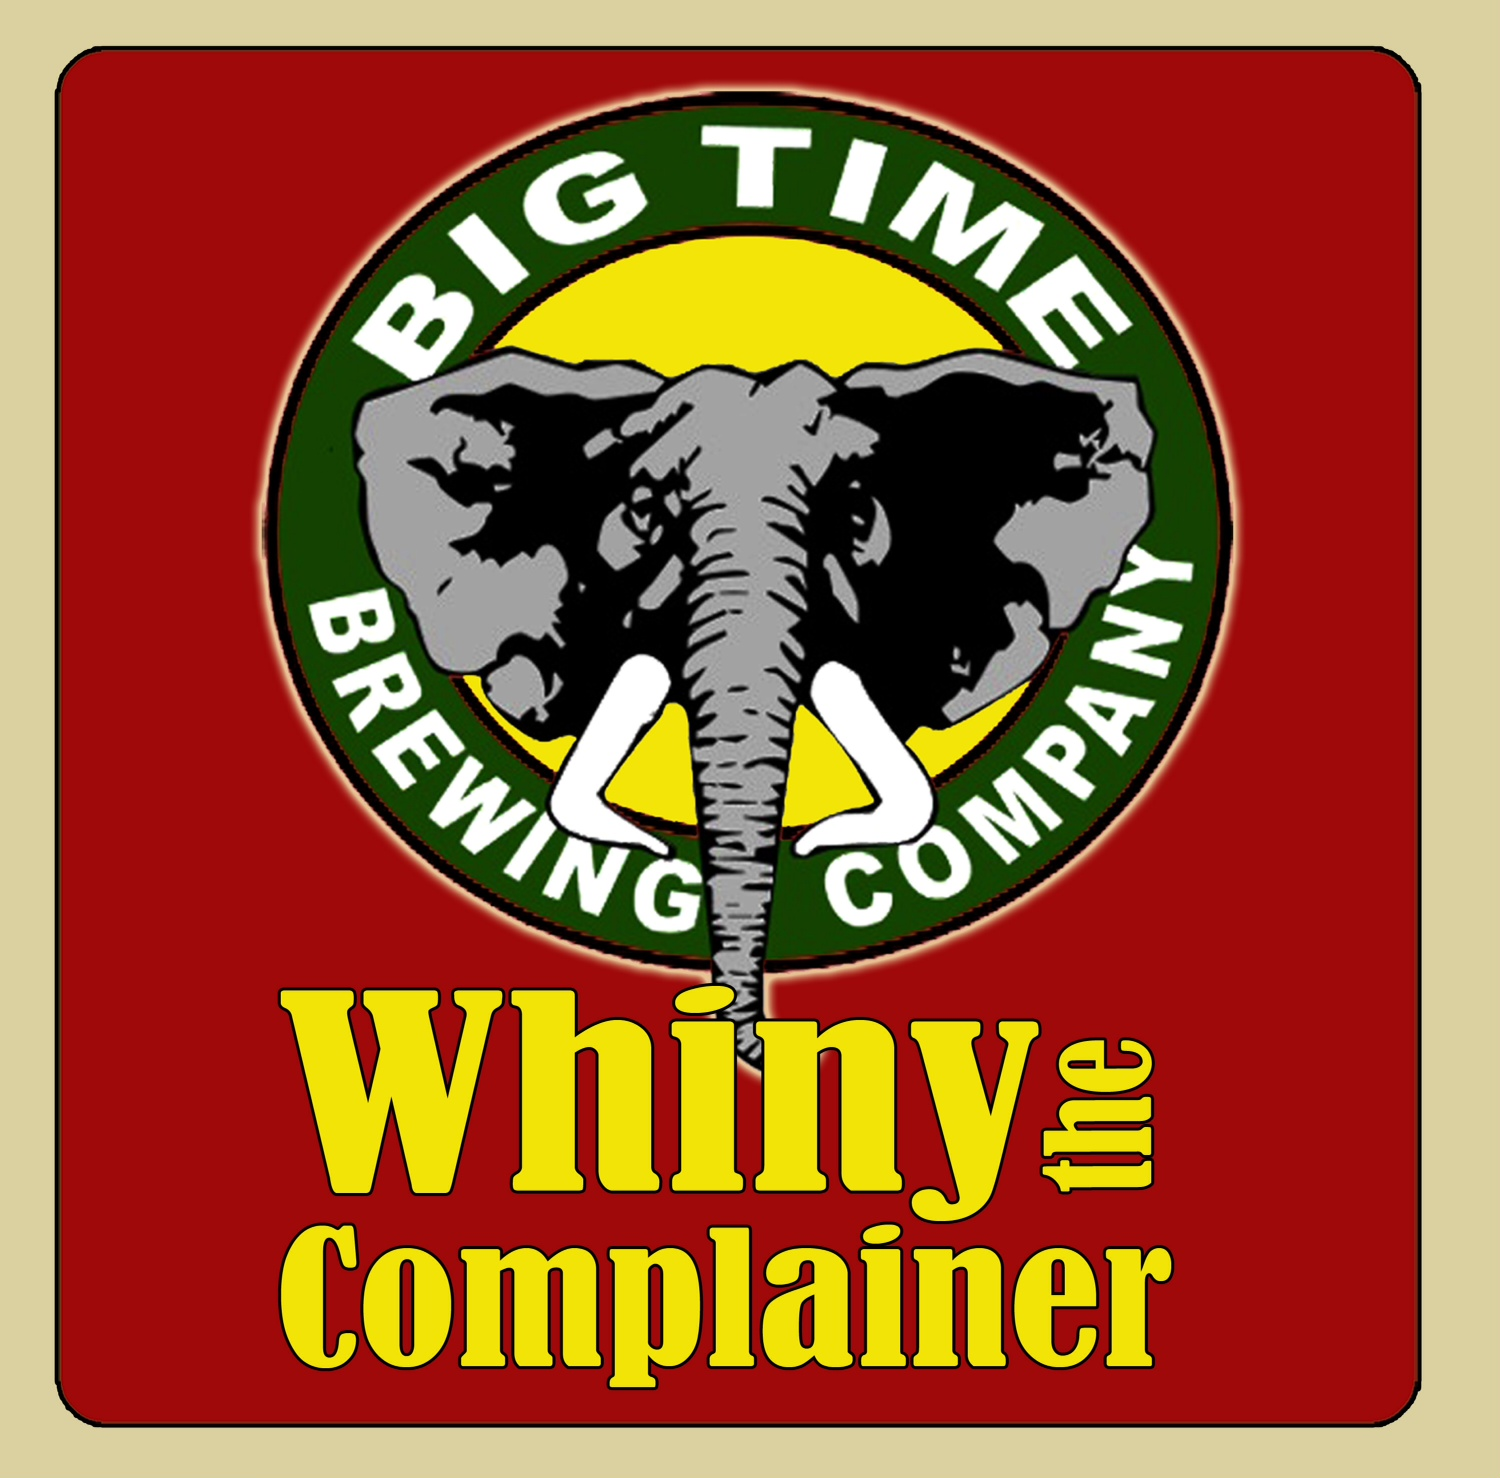 Whiny_complainer_1